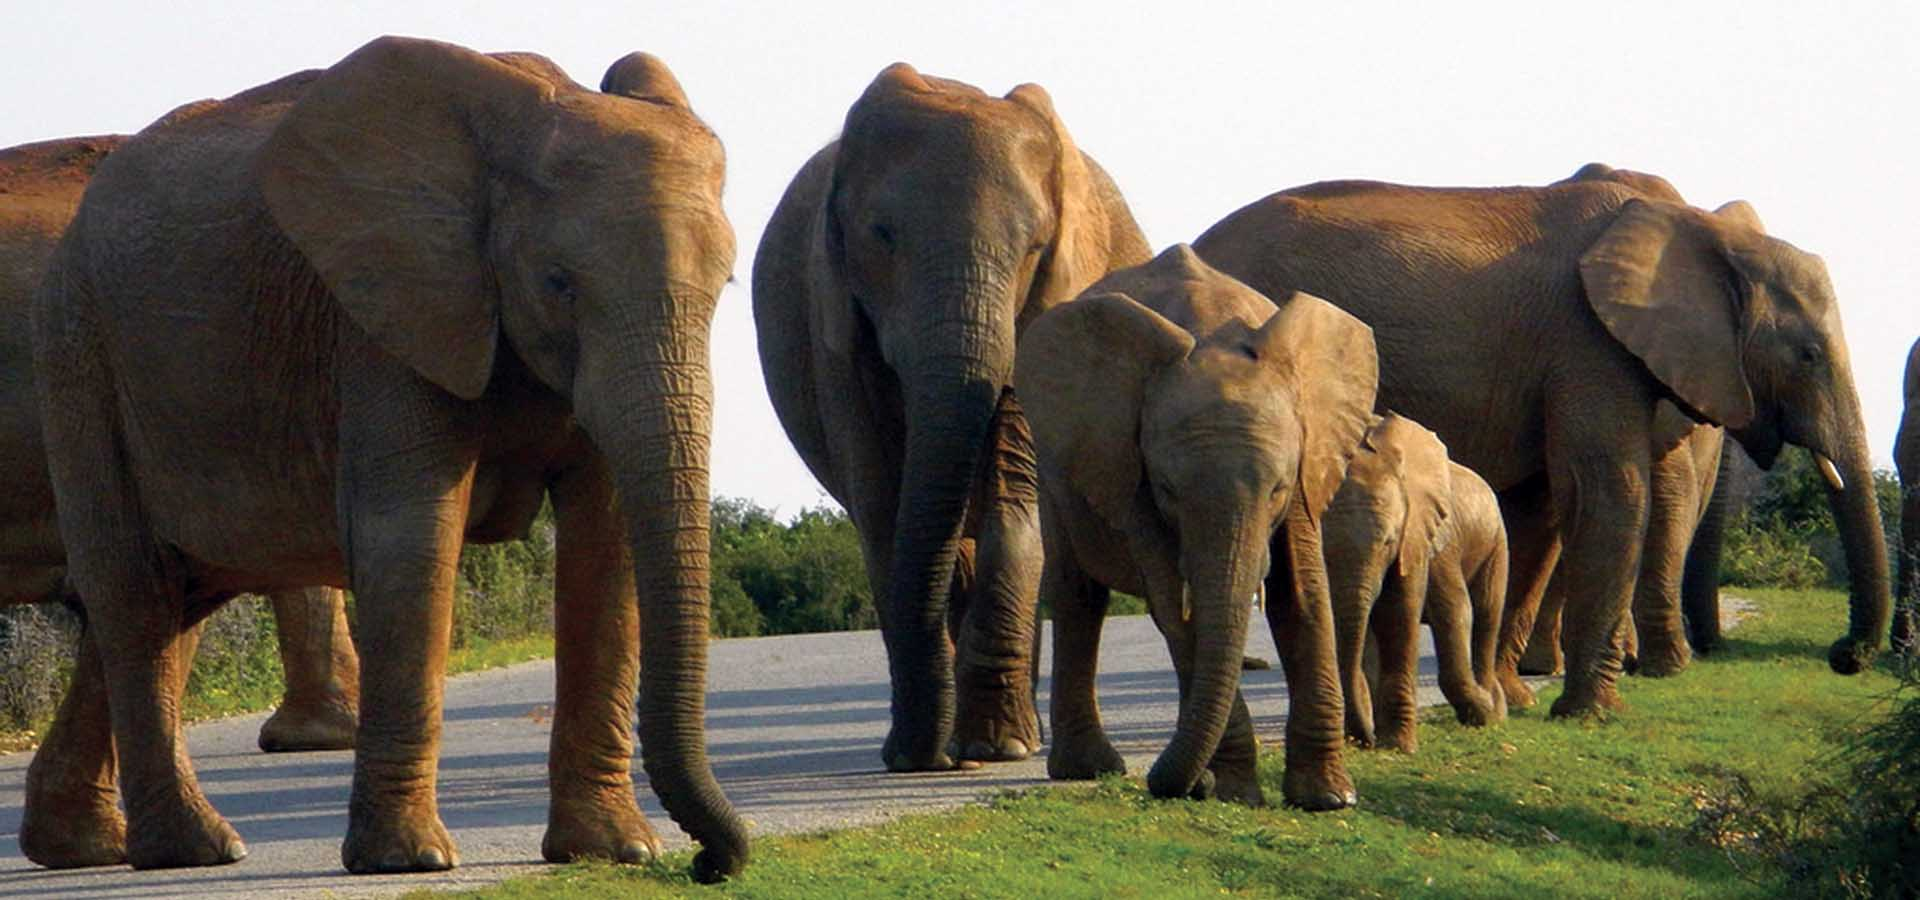 PE Addo Elephants